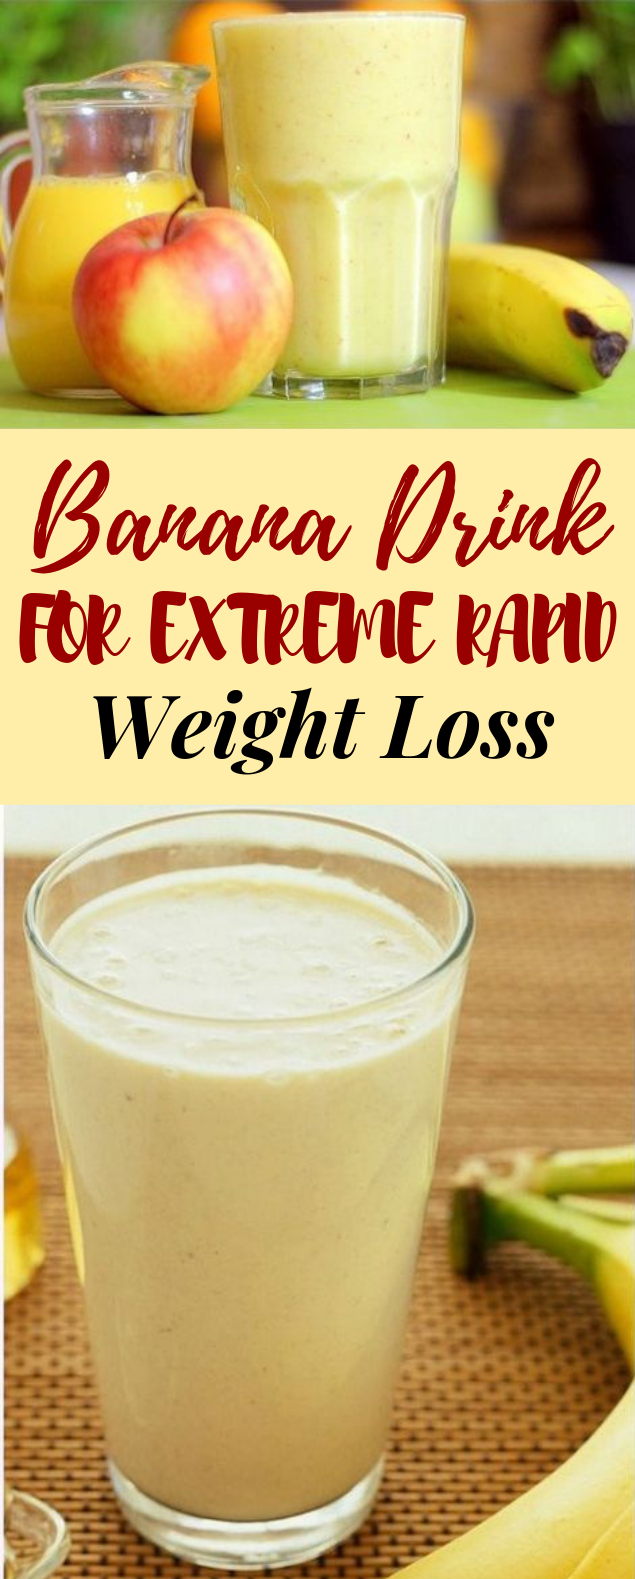 Banana Drink for Extreme Rapid Weight Loss #healthydrink #weightloss